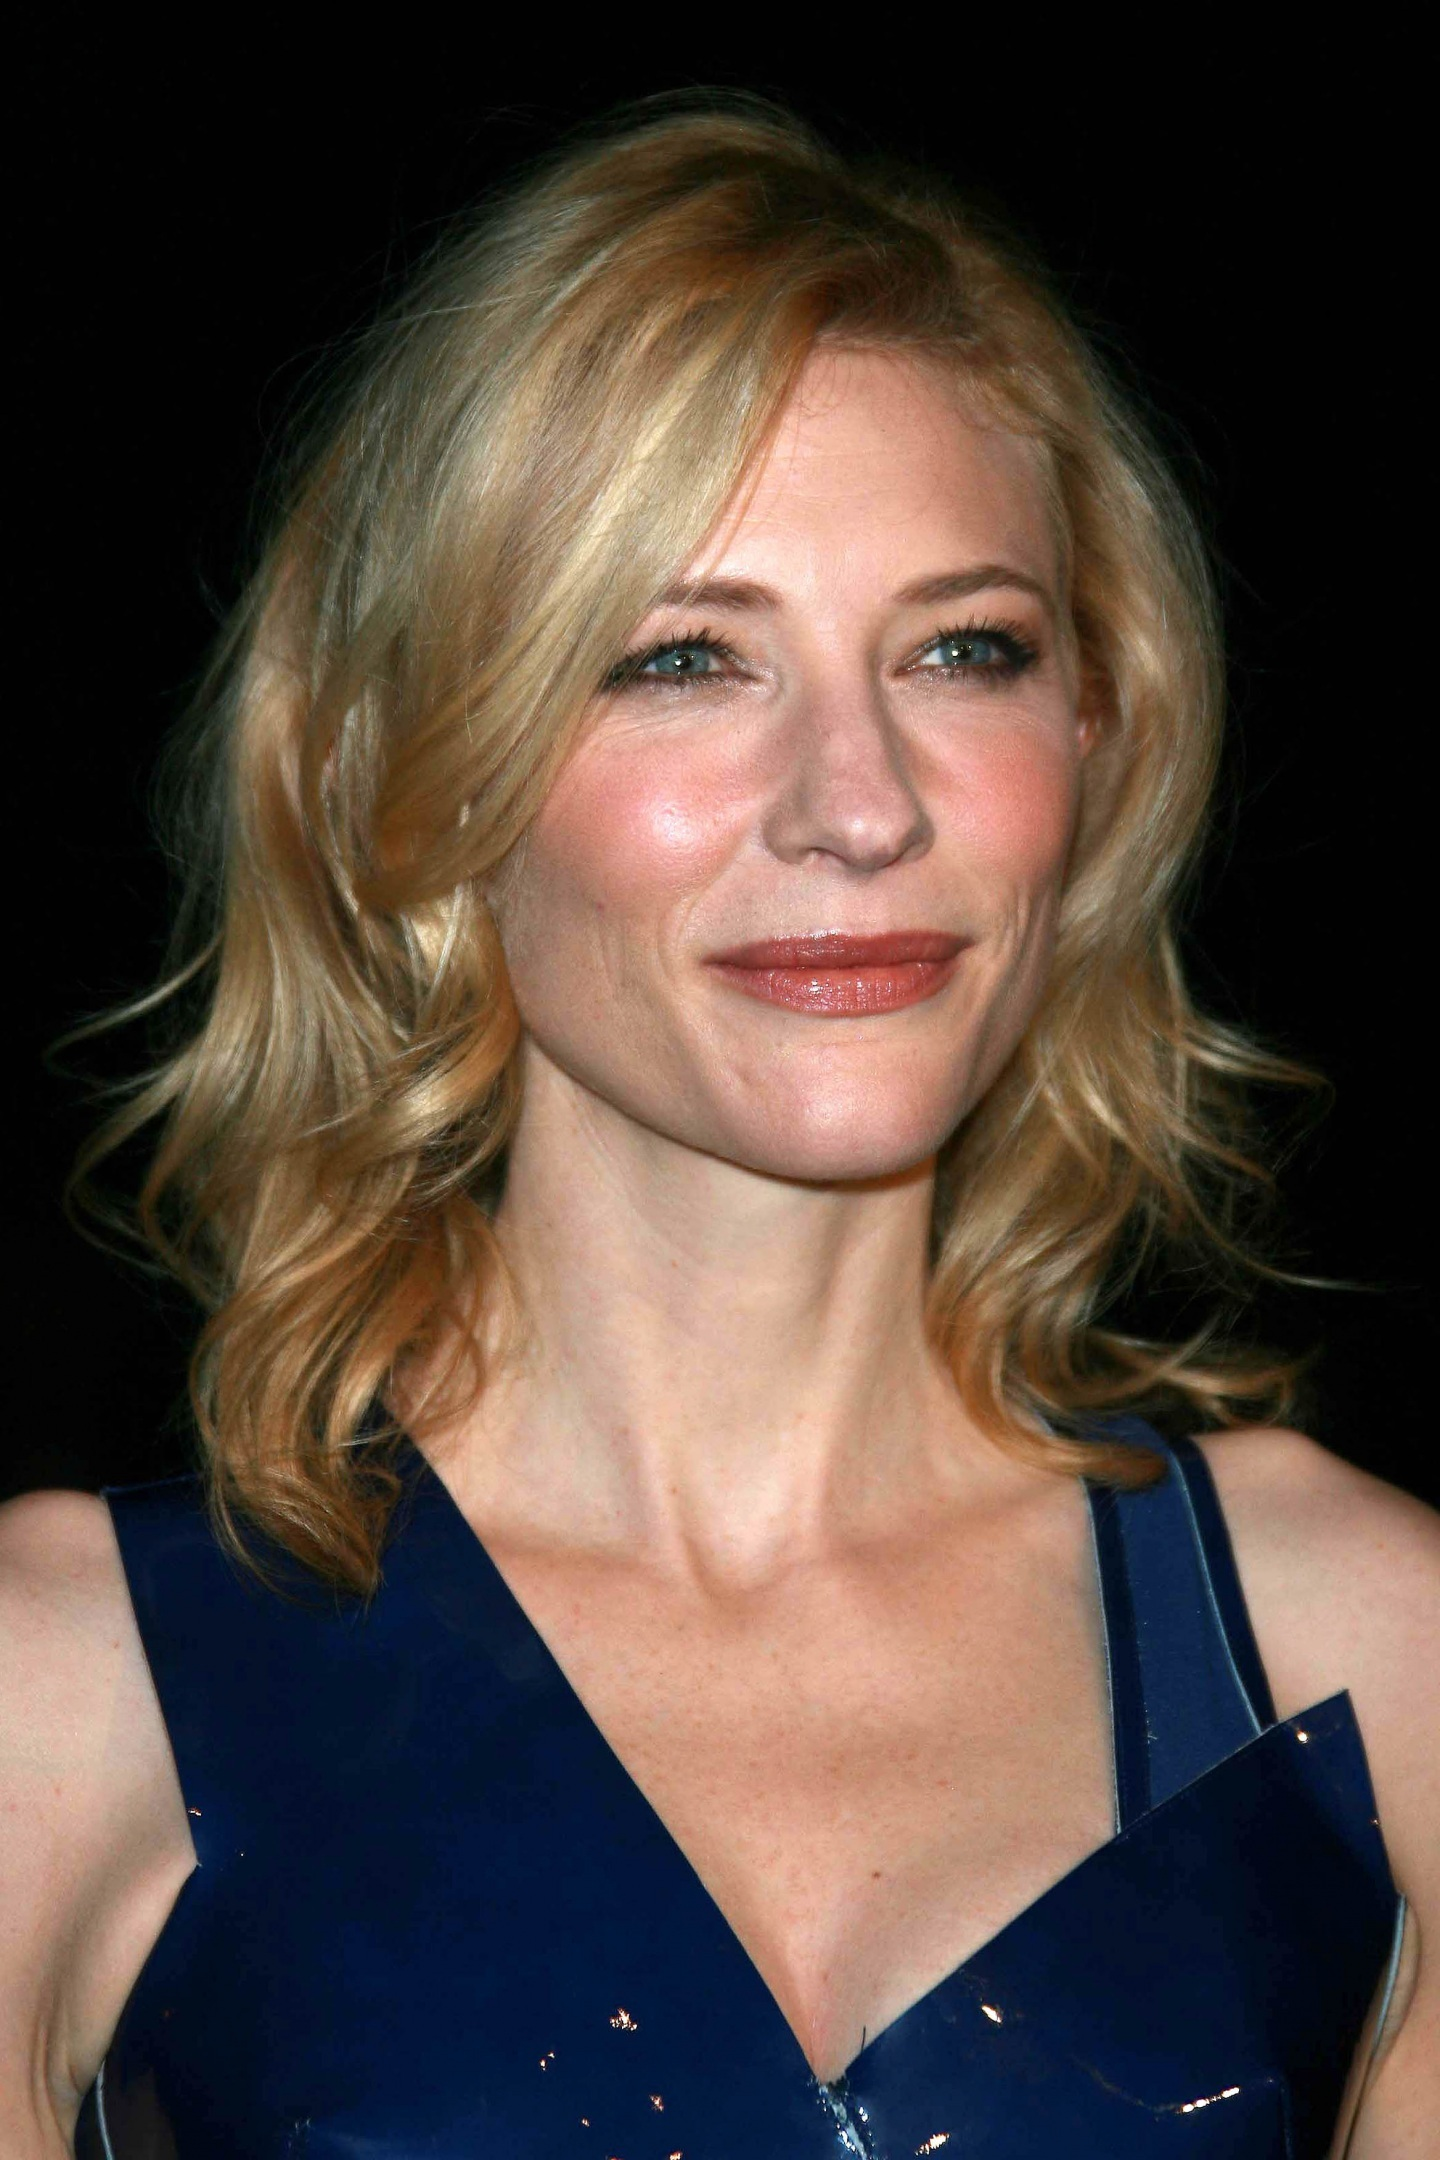 Cate Blanchett #702543 Wallpapers High Quality | Download Free